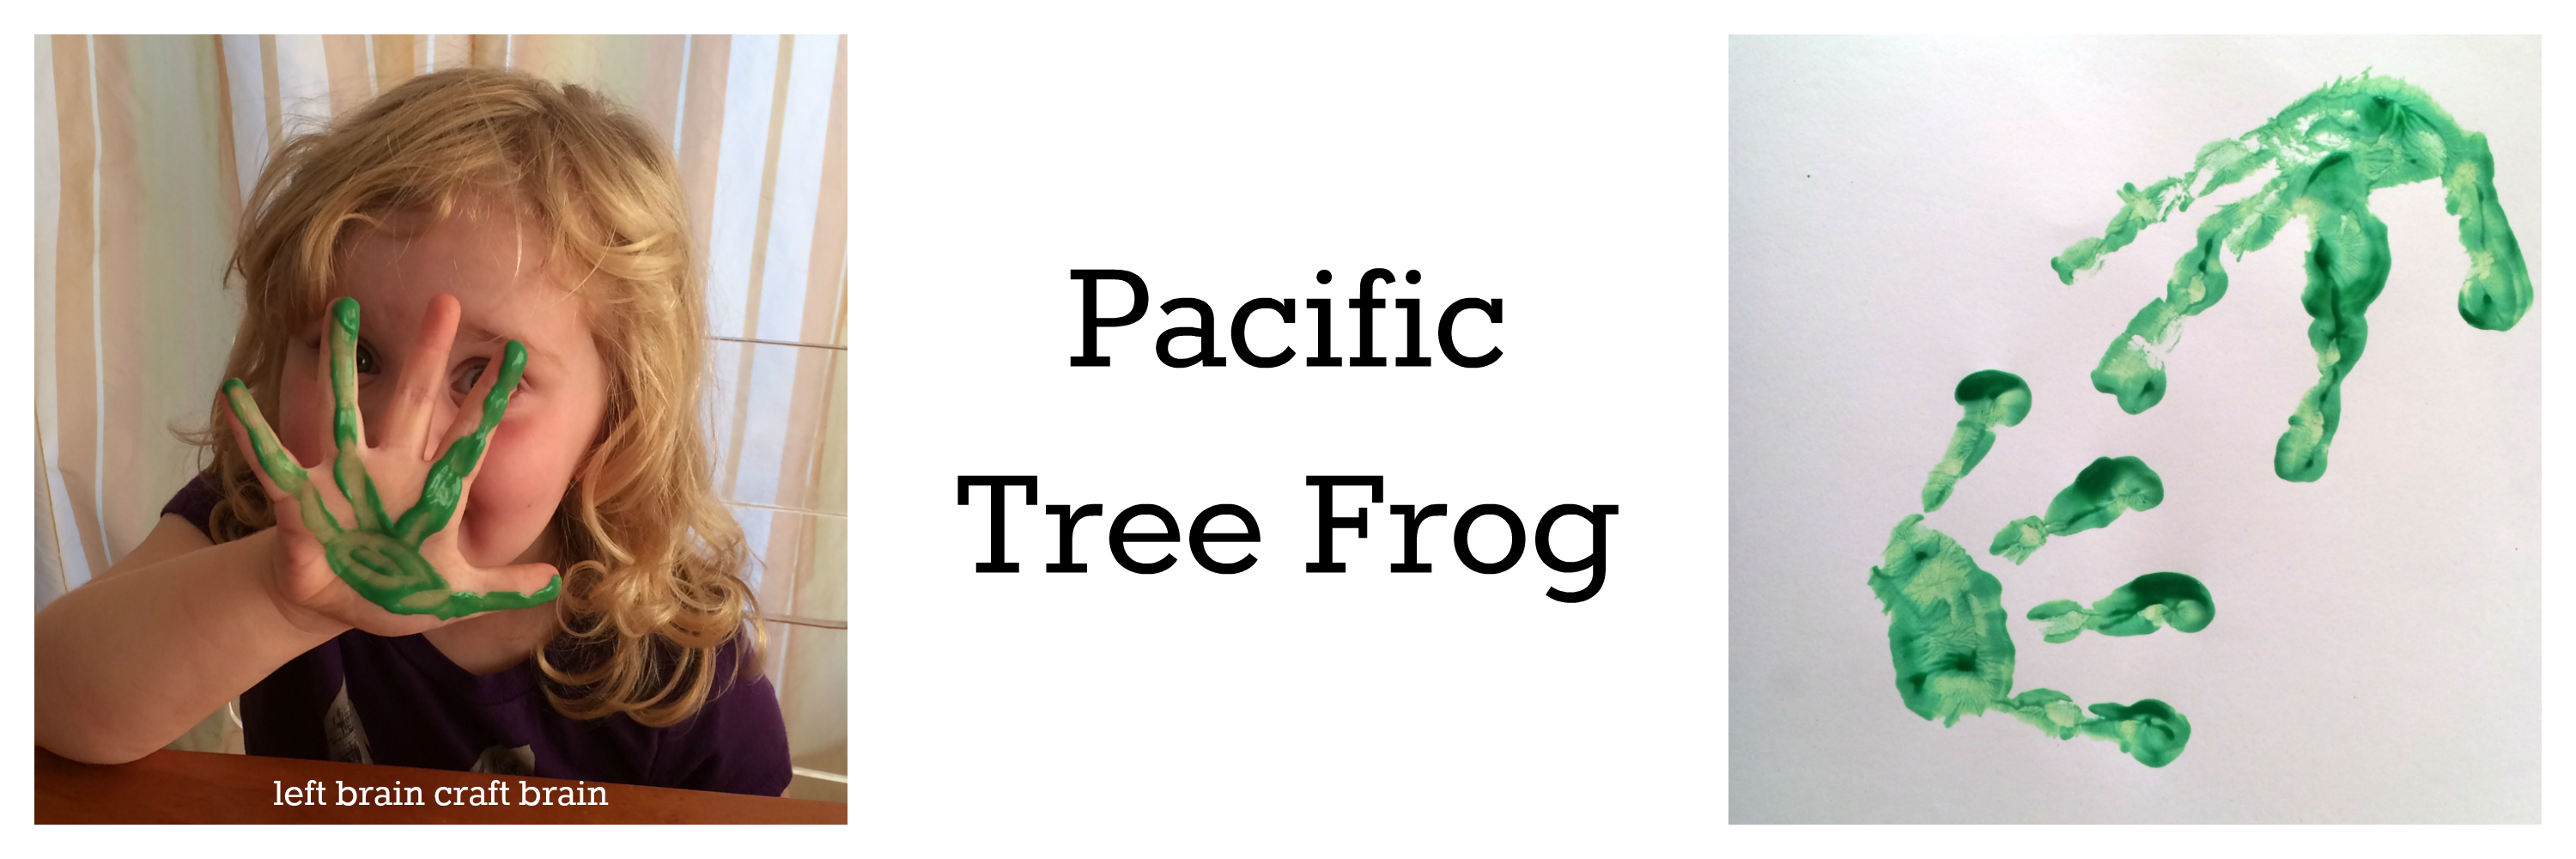 pacific tree frog animal track hand print left brain craft brain